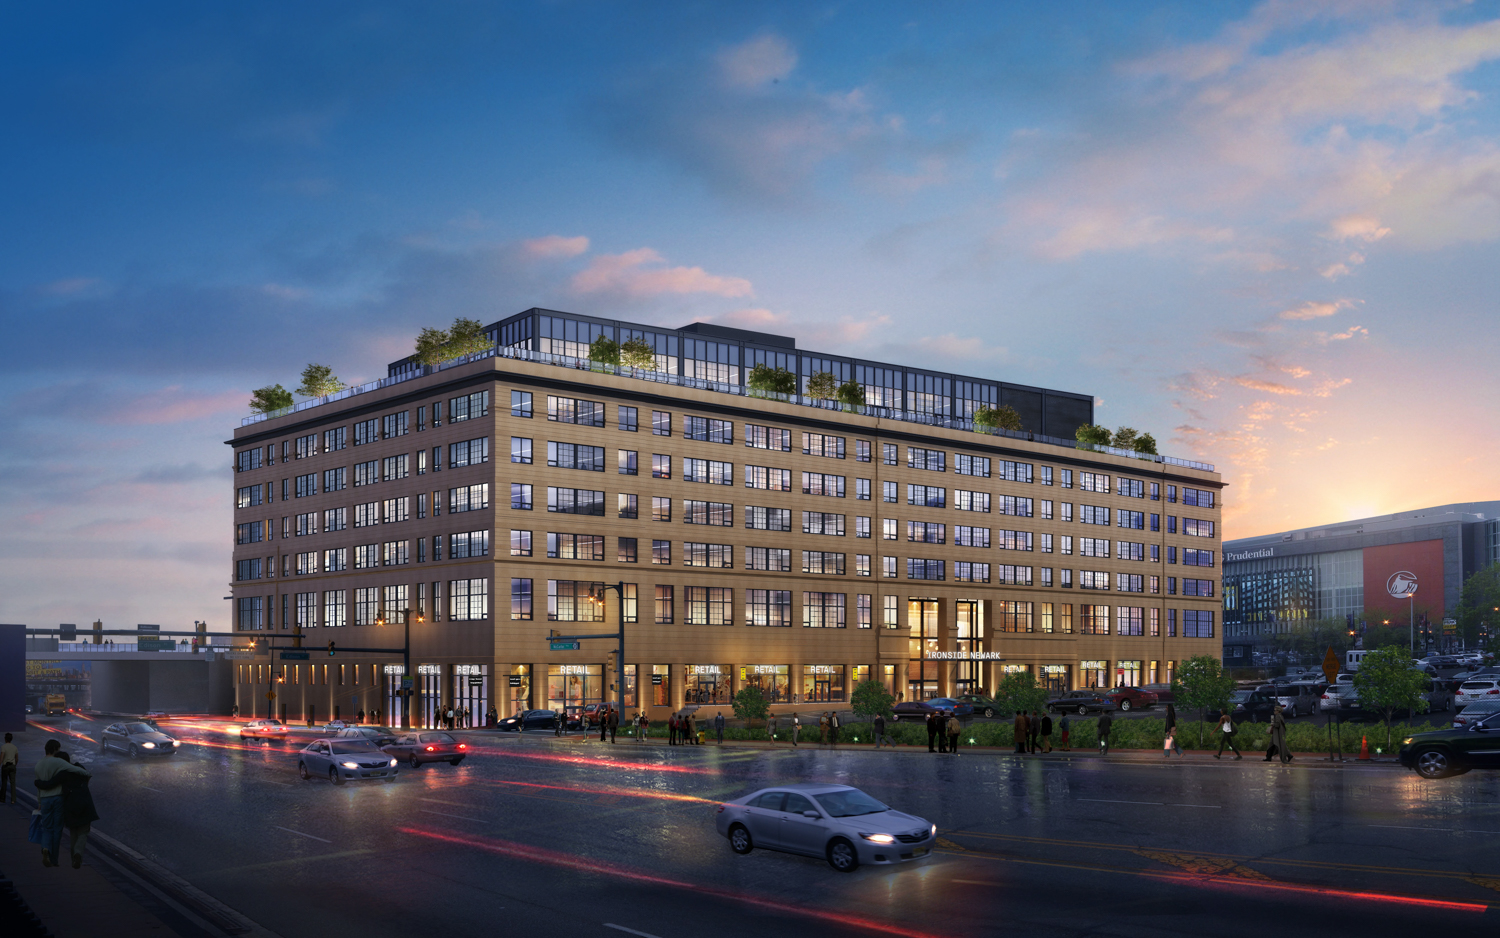 The Mars Company Releases New Renderings of Ironside Newark, Their Perkins Eastman-Designed Office Project